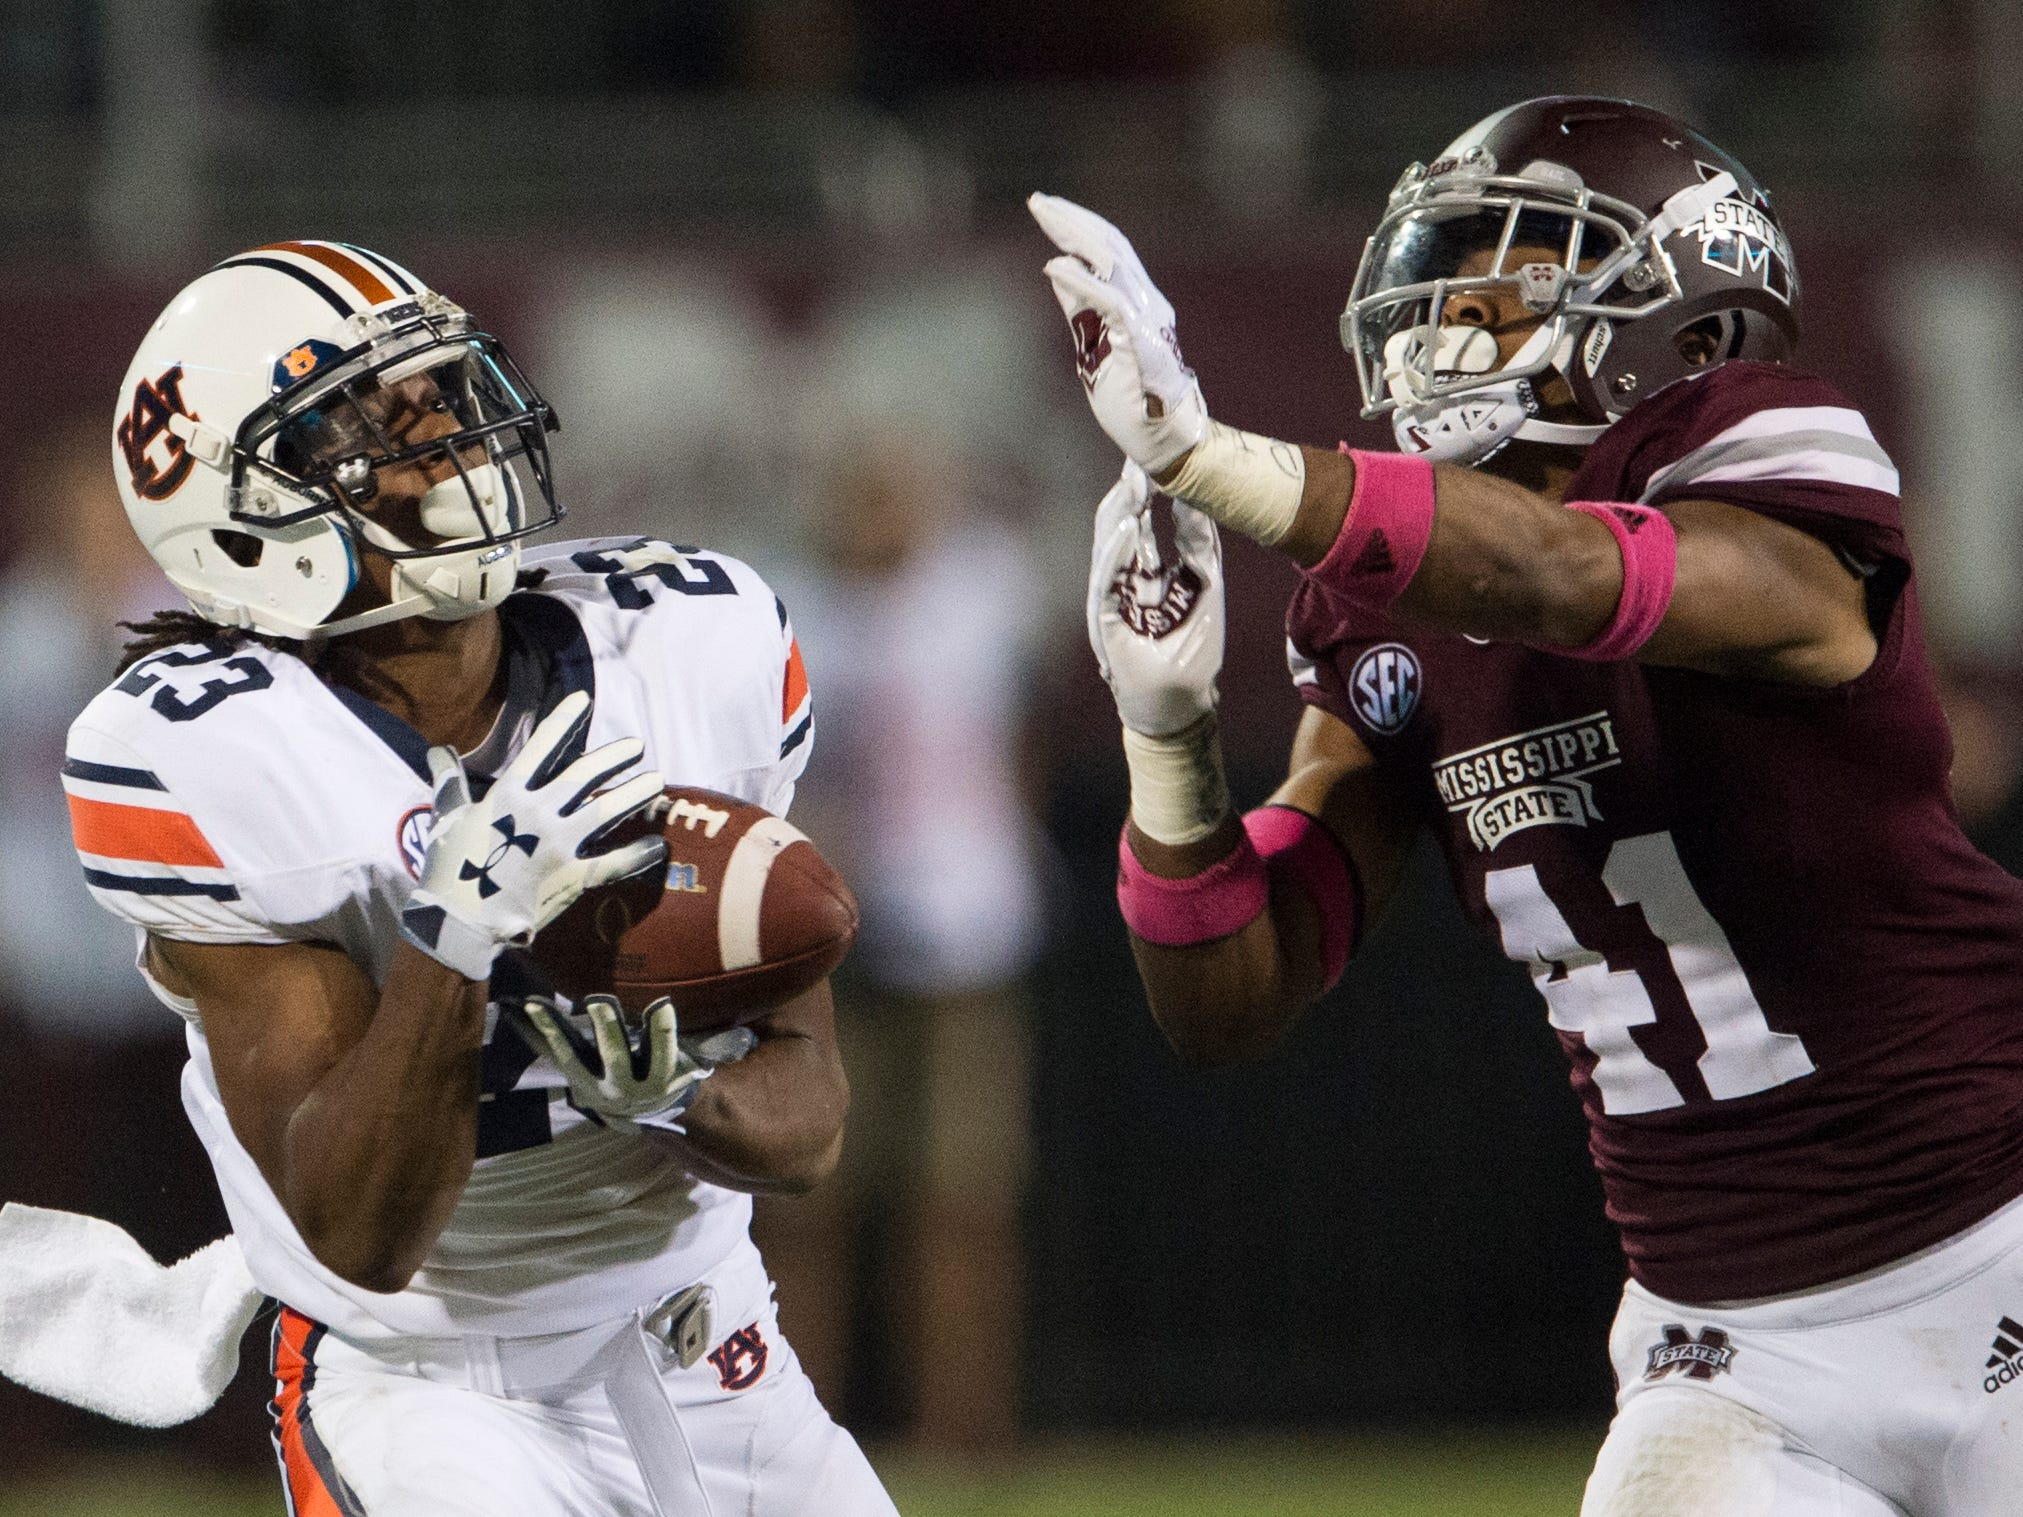 Auburn's Ryan Davis (23) catches a long pass guarded by Mississippi State's Mark McLaurin (41) at Davis Wade Stadium in Starkville, Miss., on Saturday, Oct. 6, 2018. Mississippi State defeated Auburn 23-9.